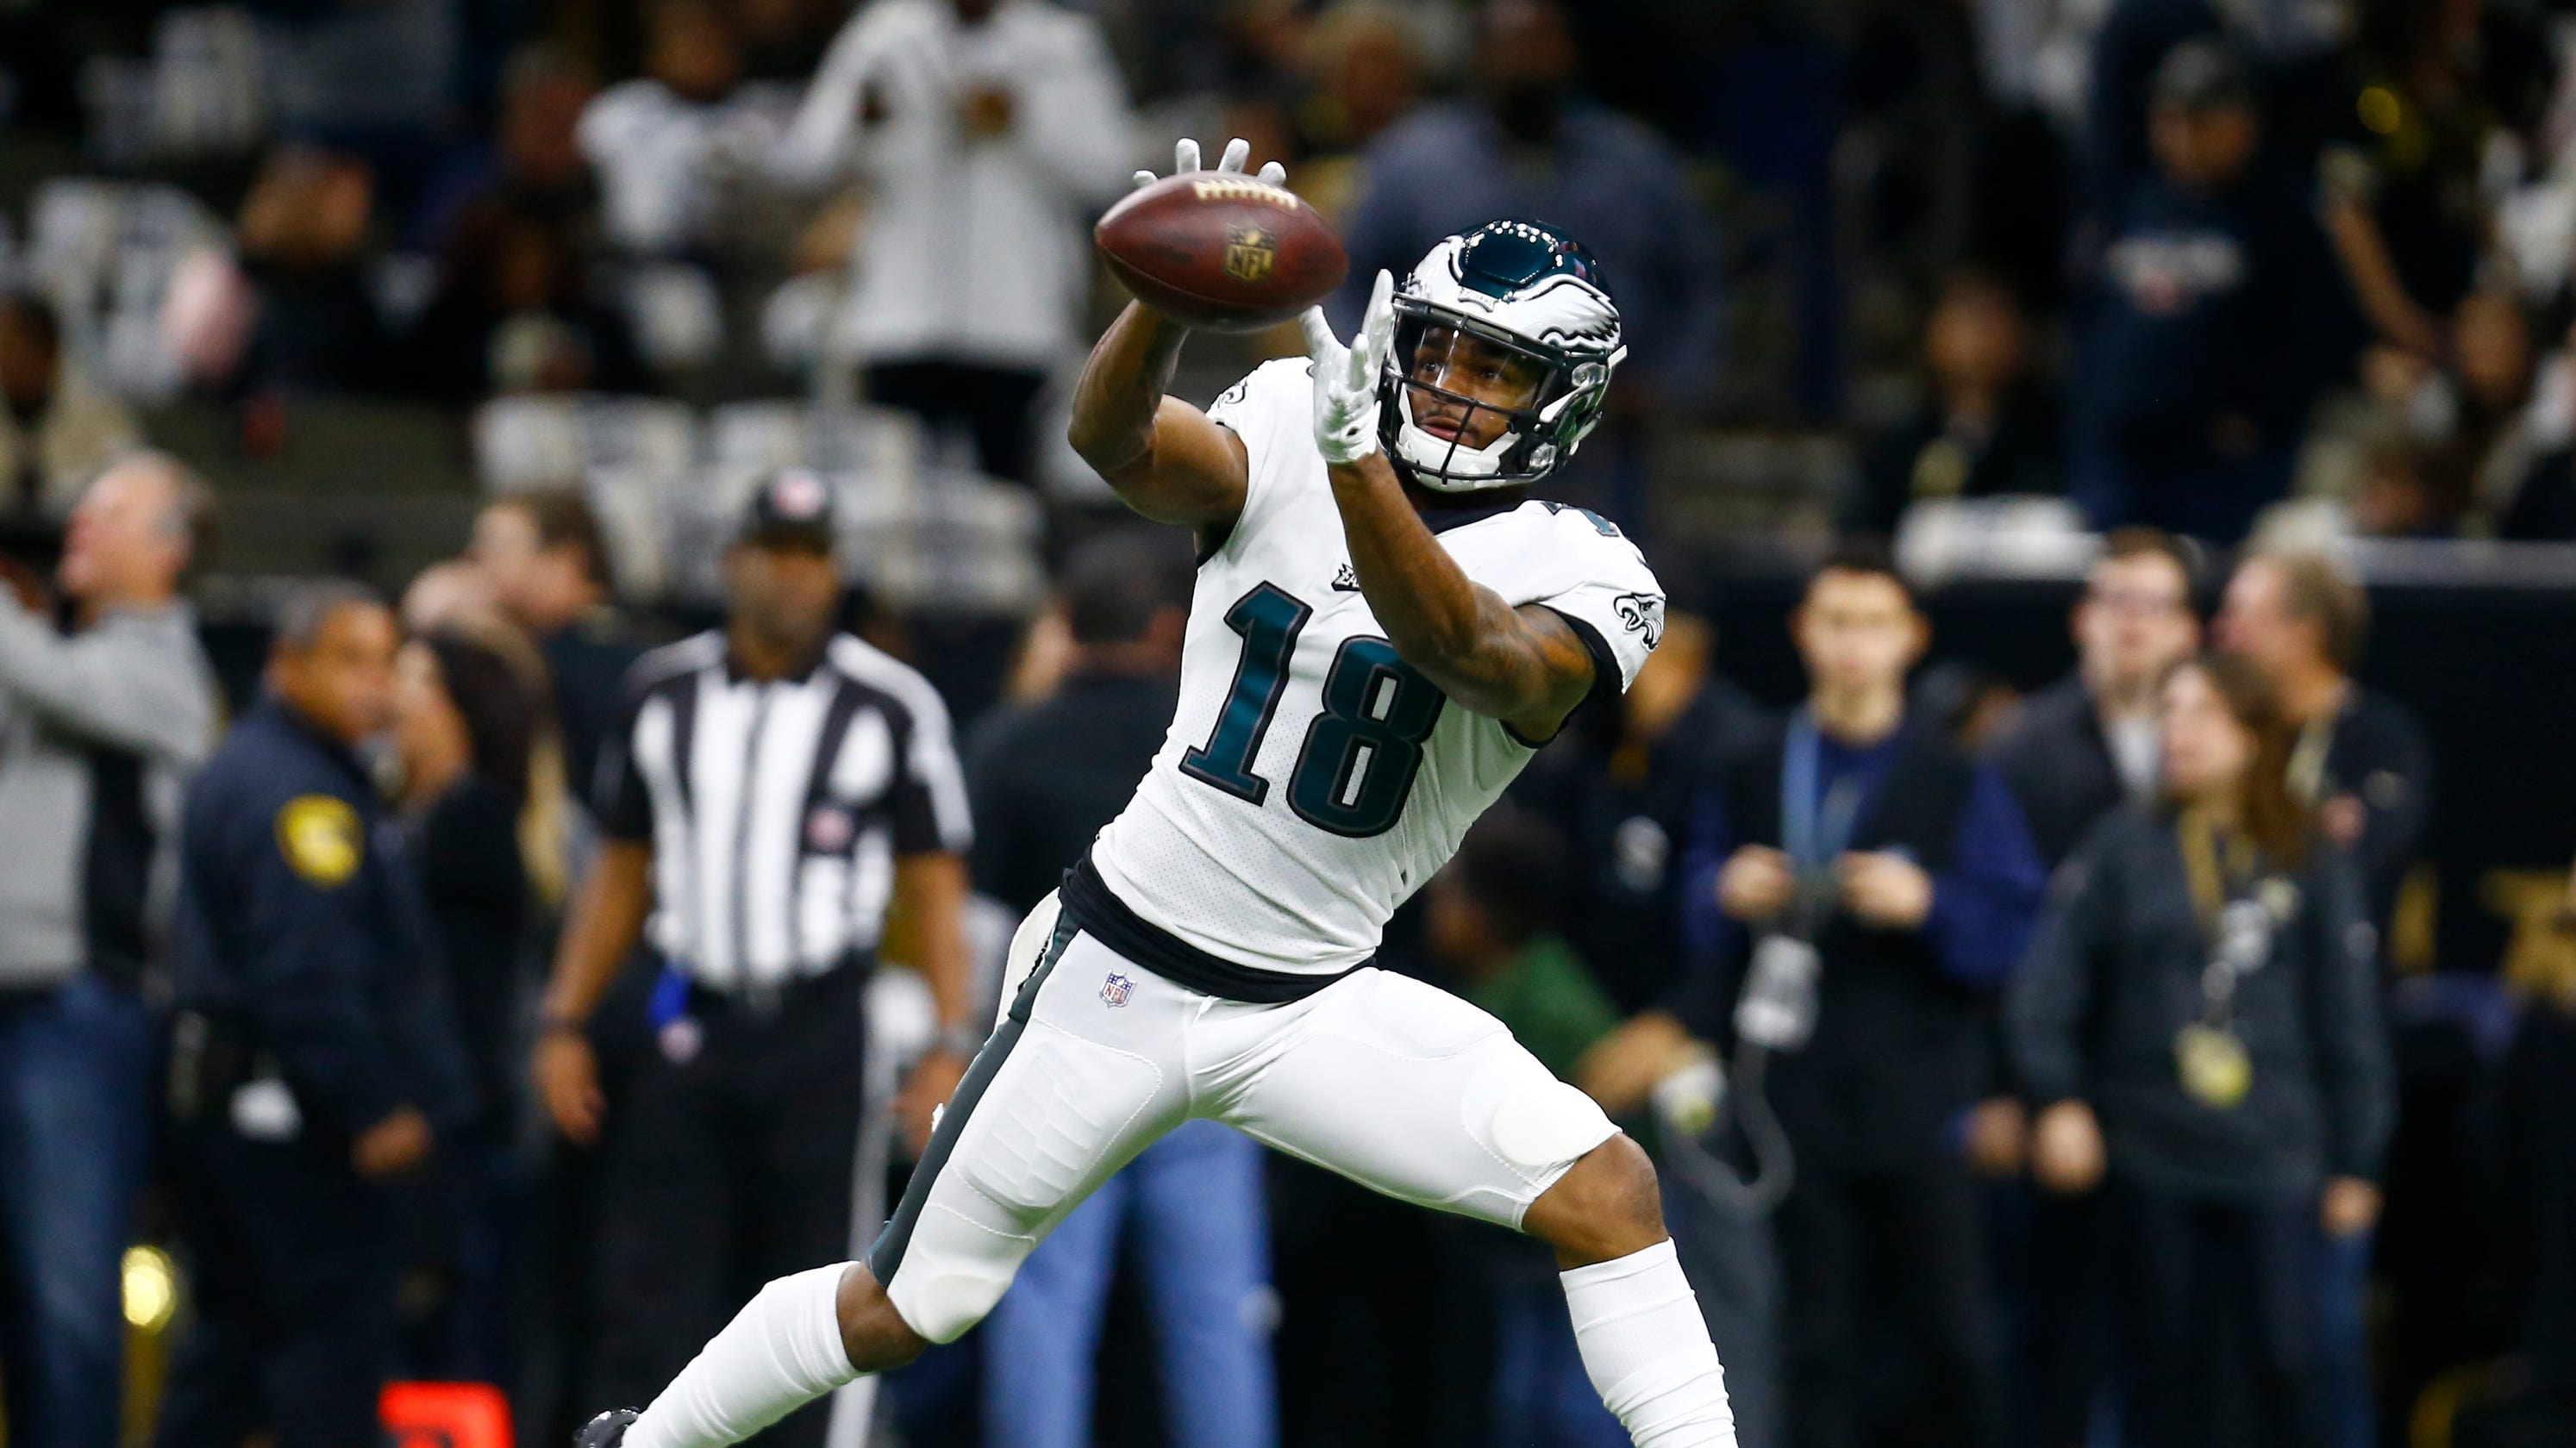 ca576fd9 Philadelphia Eagles' training camp: 3 players who have stood out, 3 ...